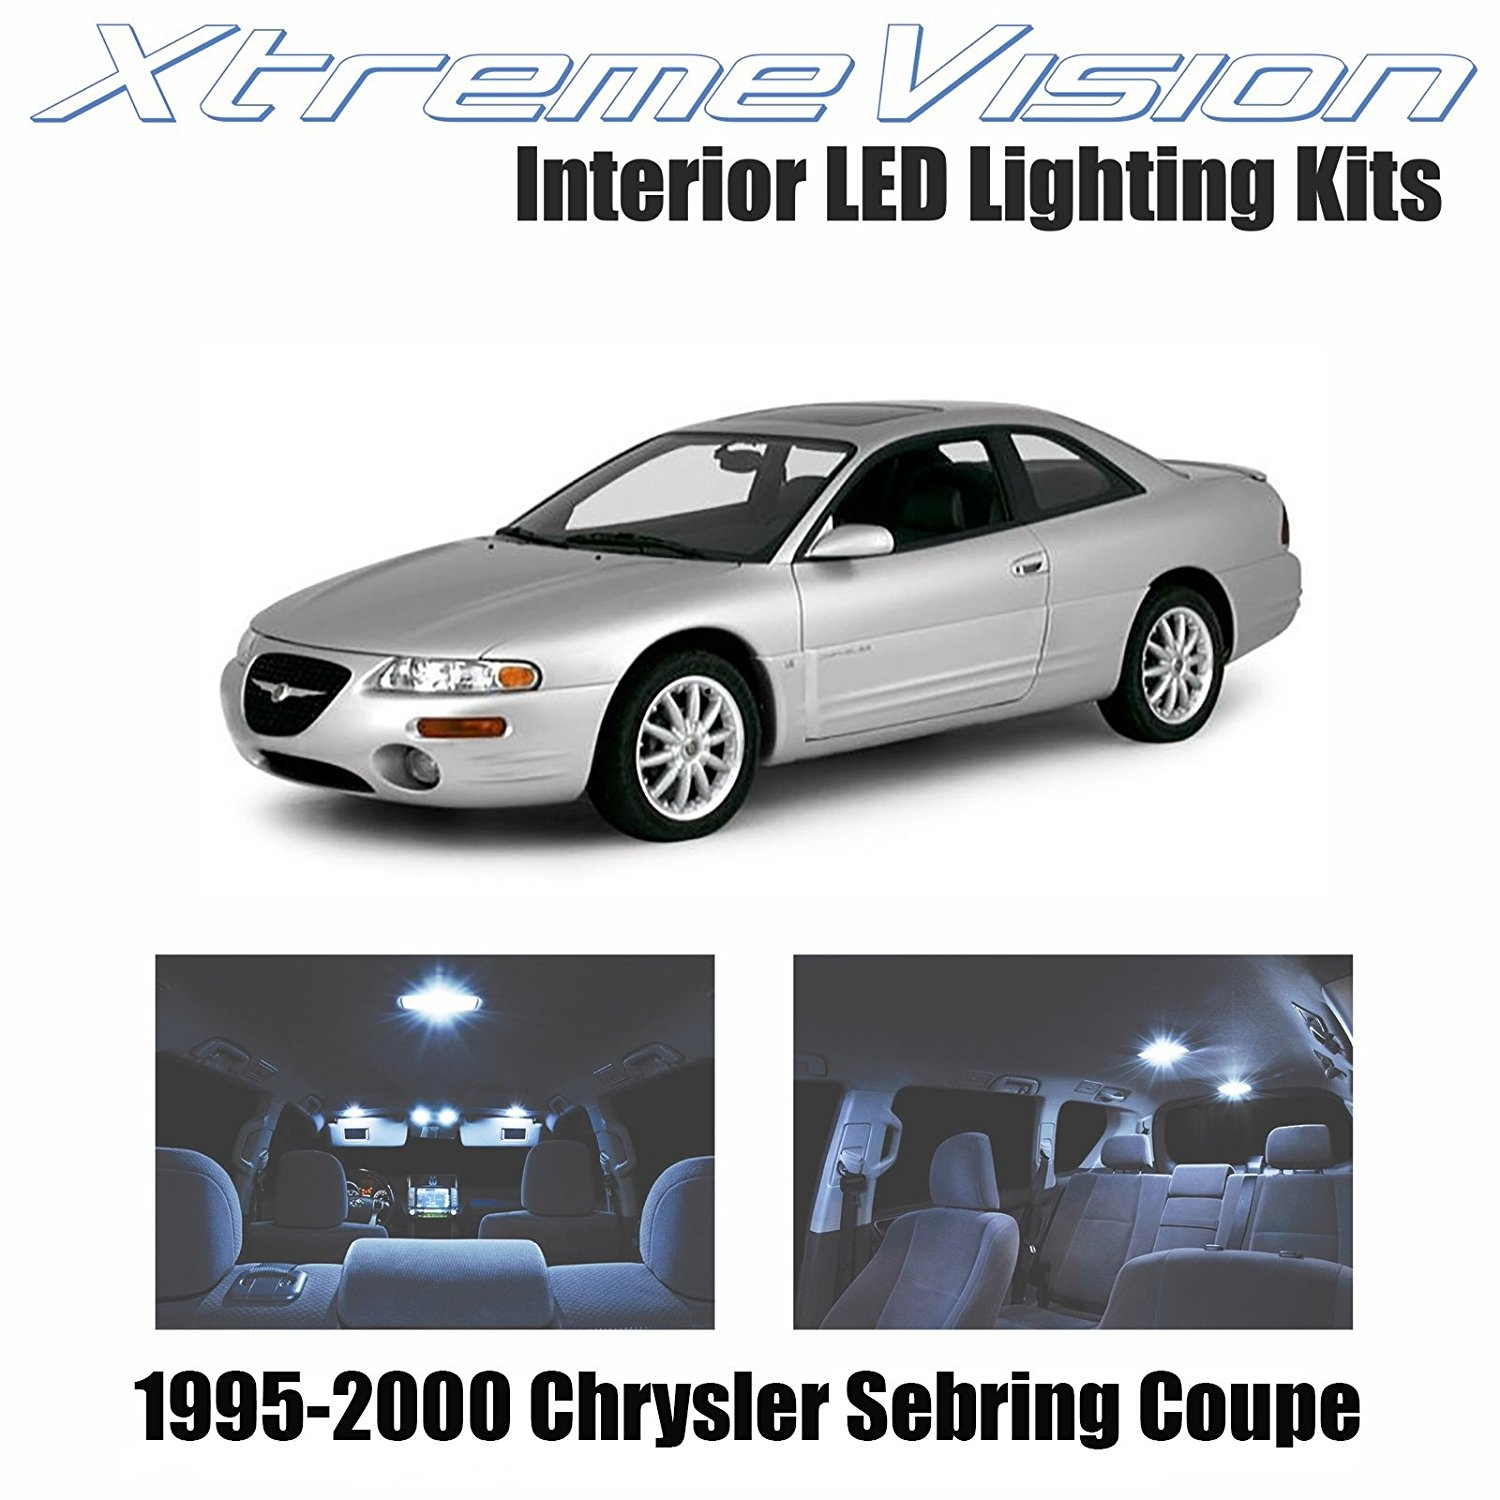 XtremeVision LED for Chrysler Sebring Coupe 1995-2000 (8 Pieces) Cool White Premium Interior LED Kit Package + Installation Tool